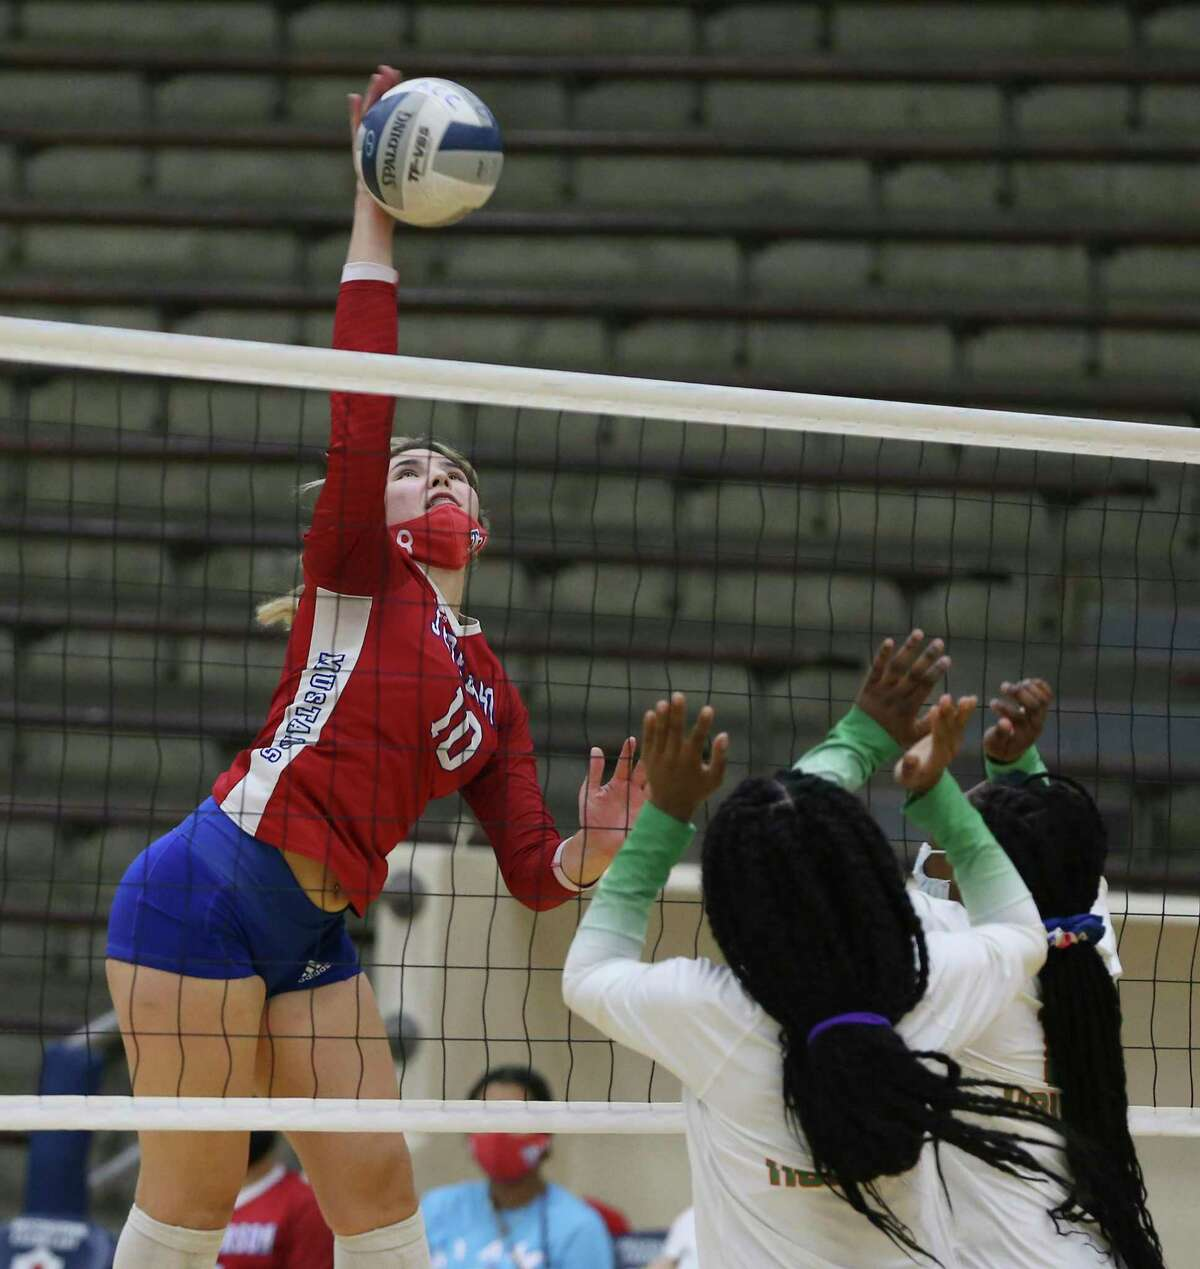 Jefferson's Summer Silva (10) records one of her nine kills against Sam Houston during their volleyball match at Alamo Convocation Center on Tuesday, Sept. 14, 2021. Jefferson routed Sam Houston, 3-0 in sets, to take the win.